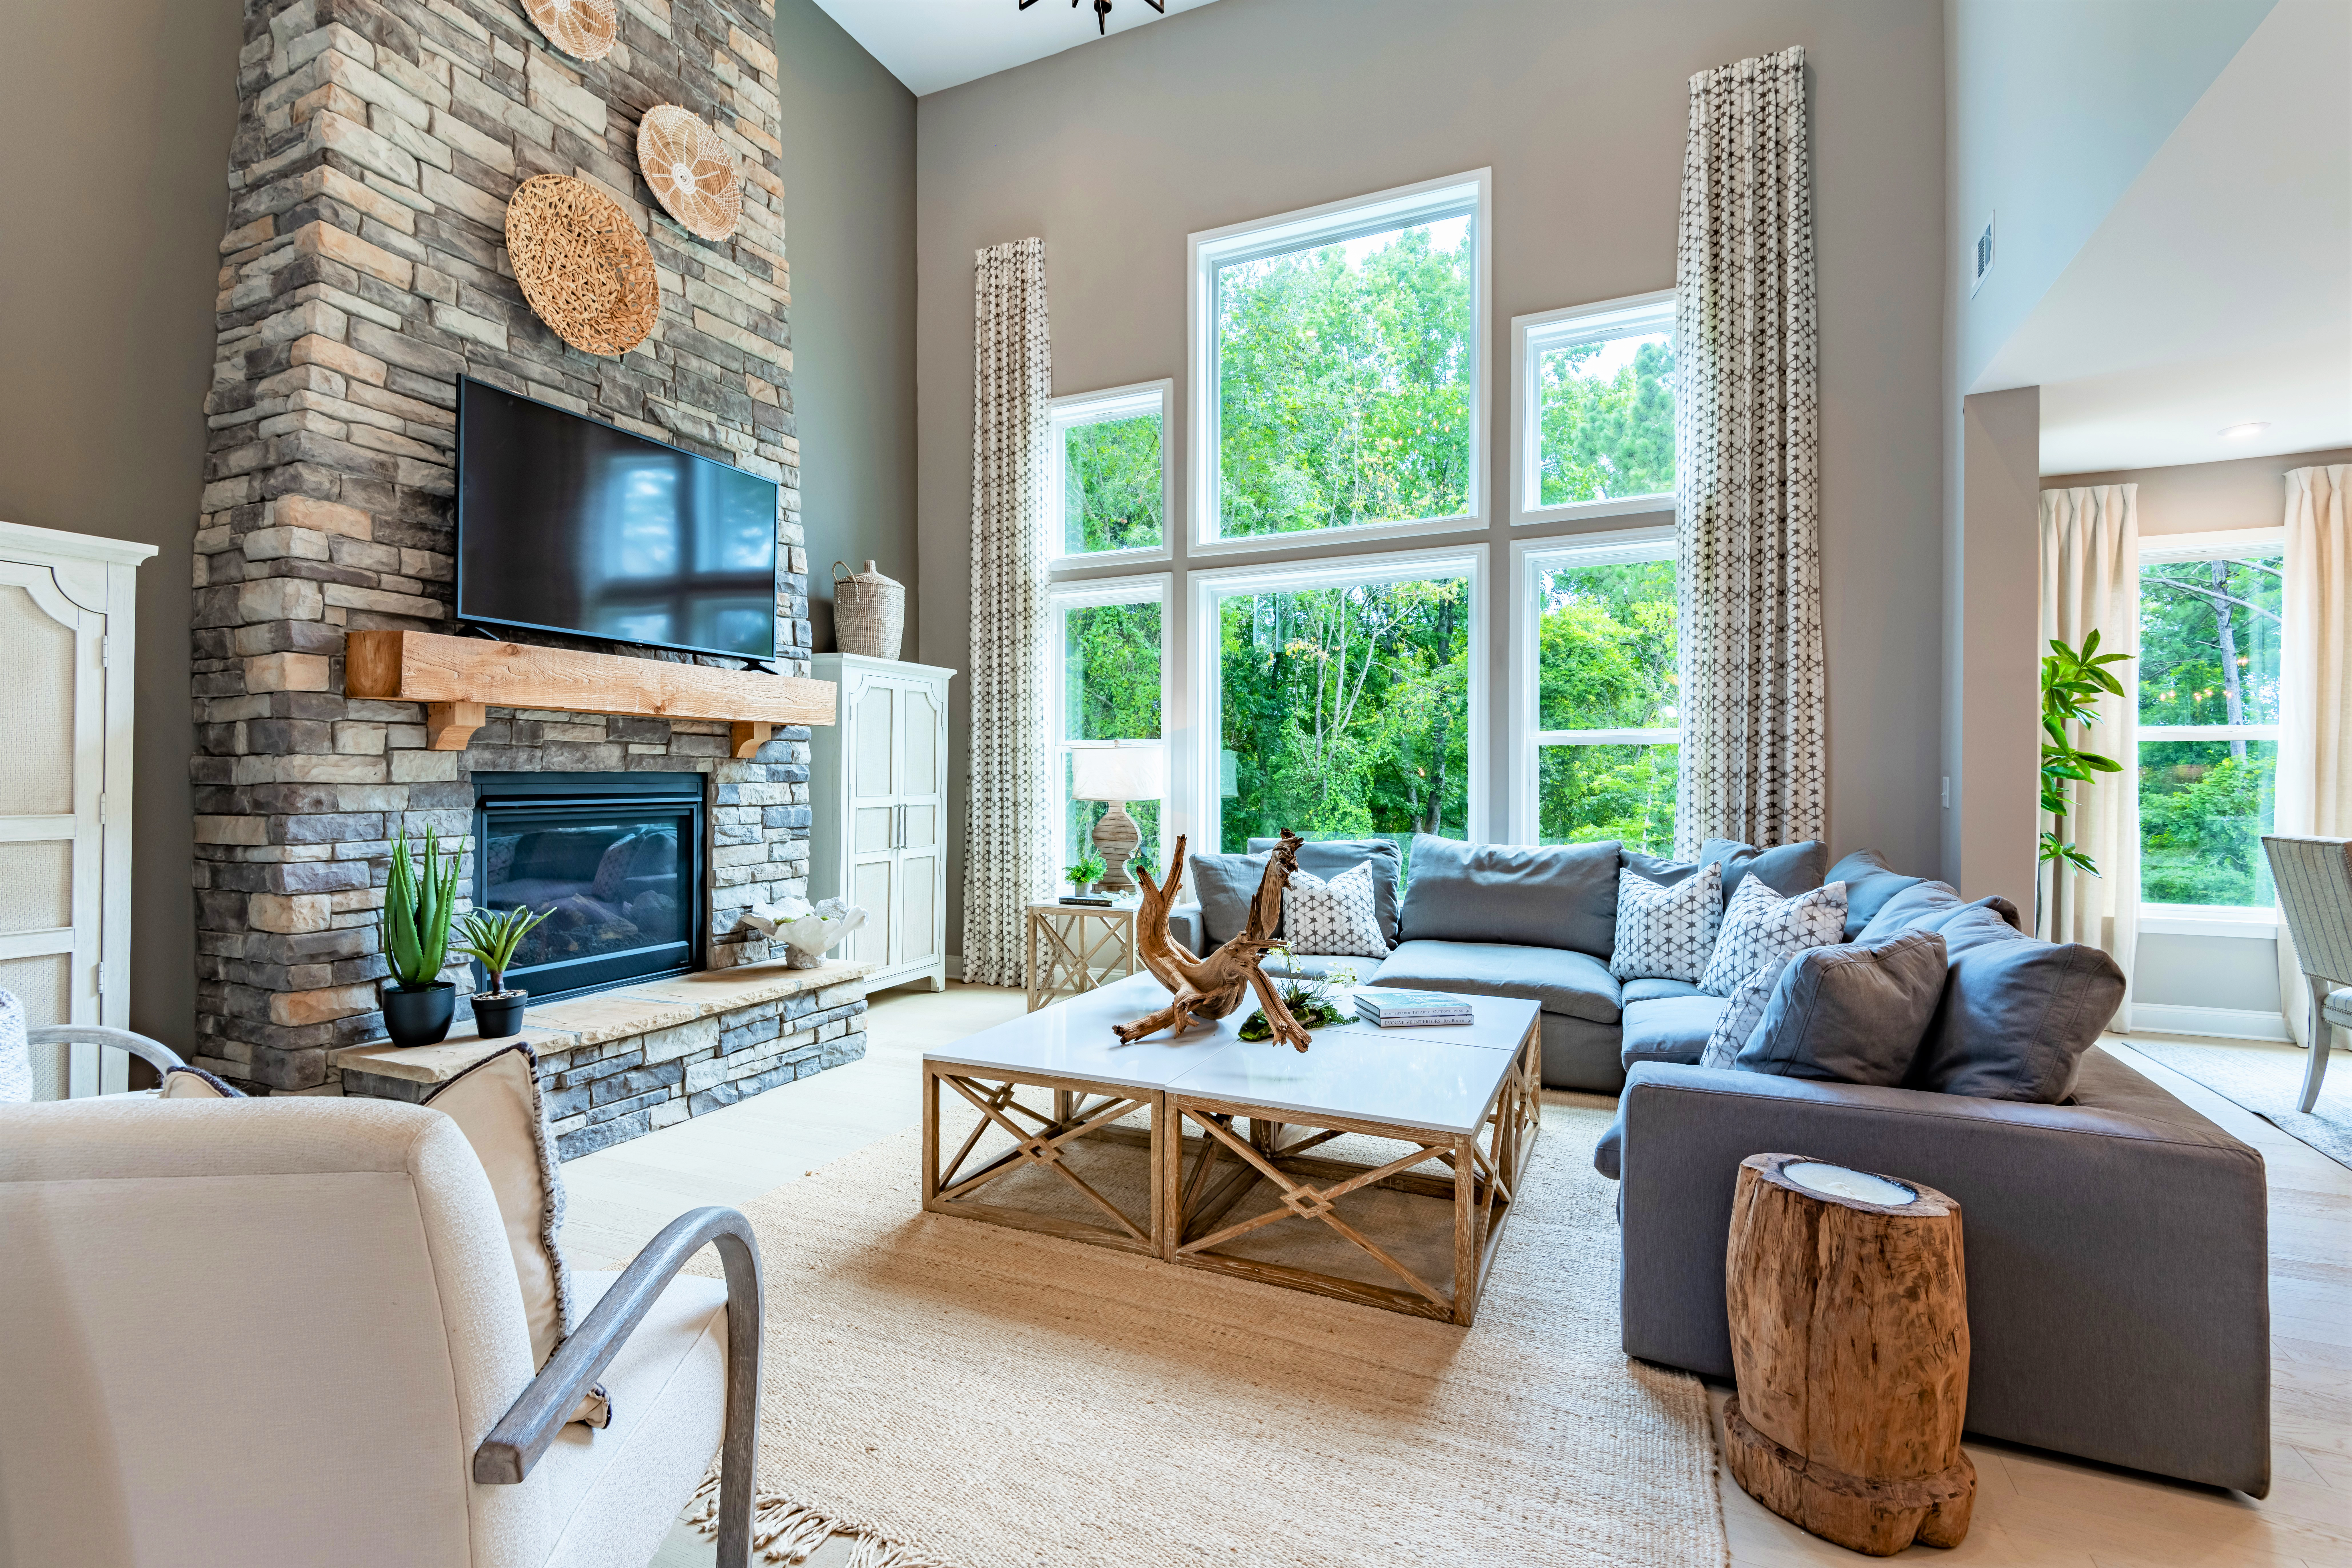 The grandin floorplan by fischer homes with two-story great room